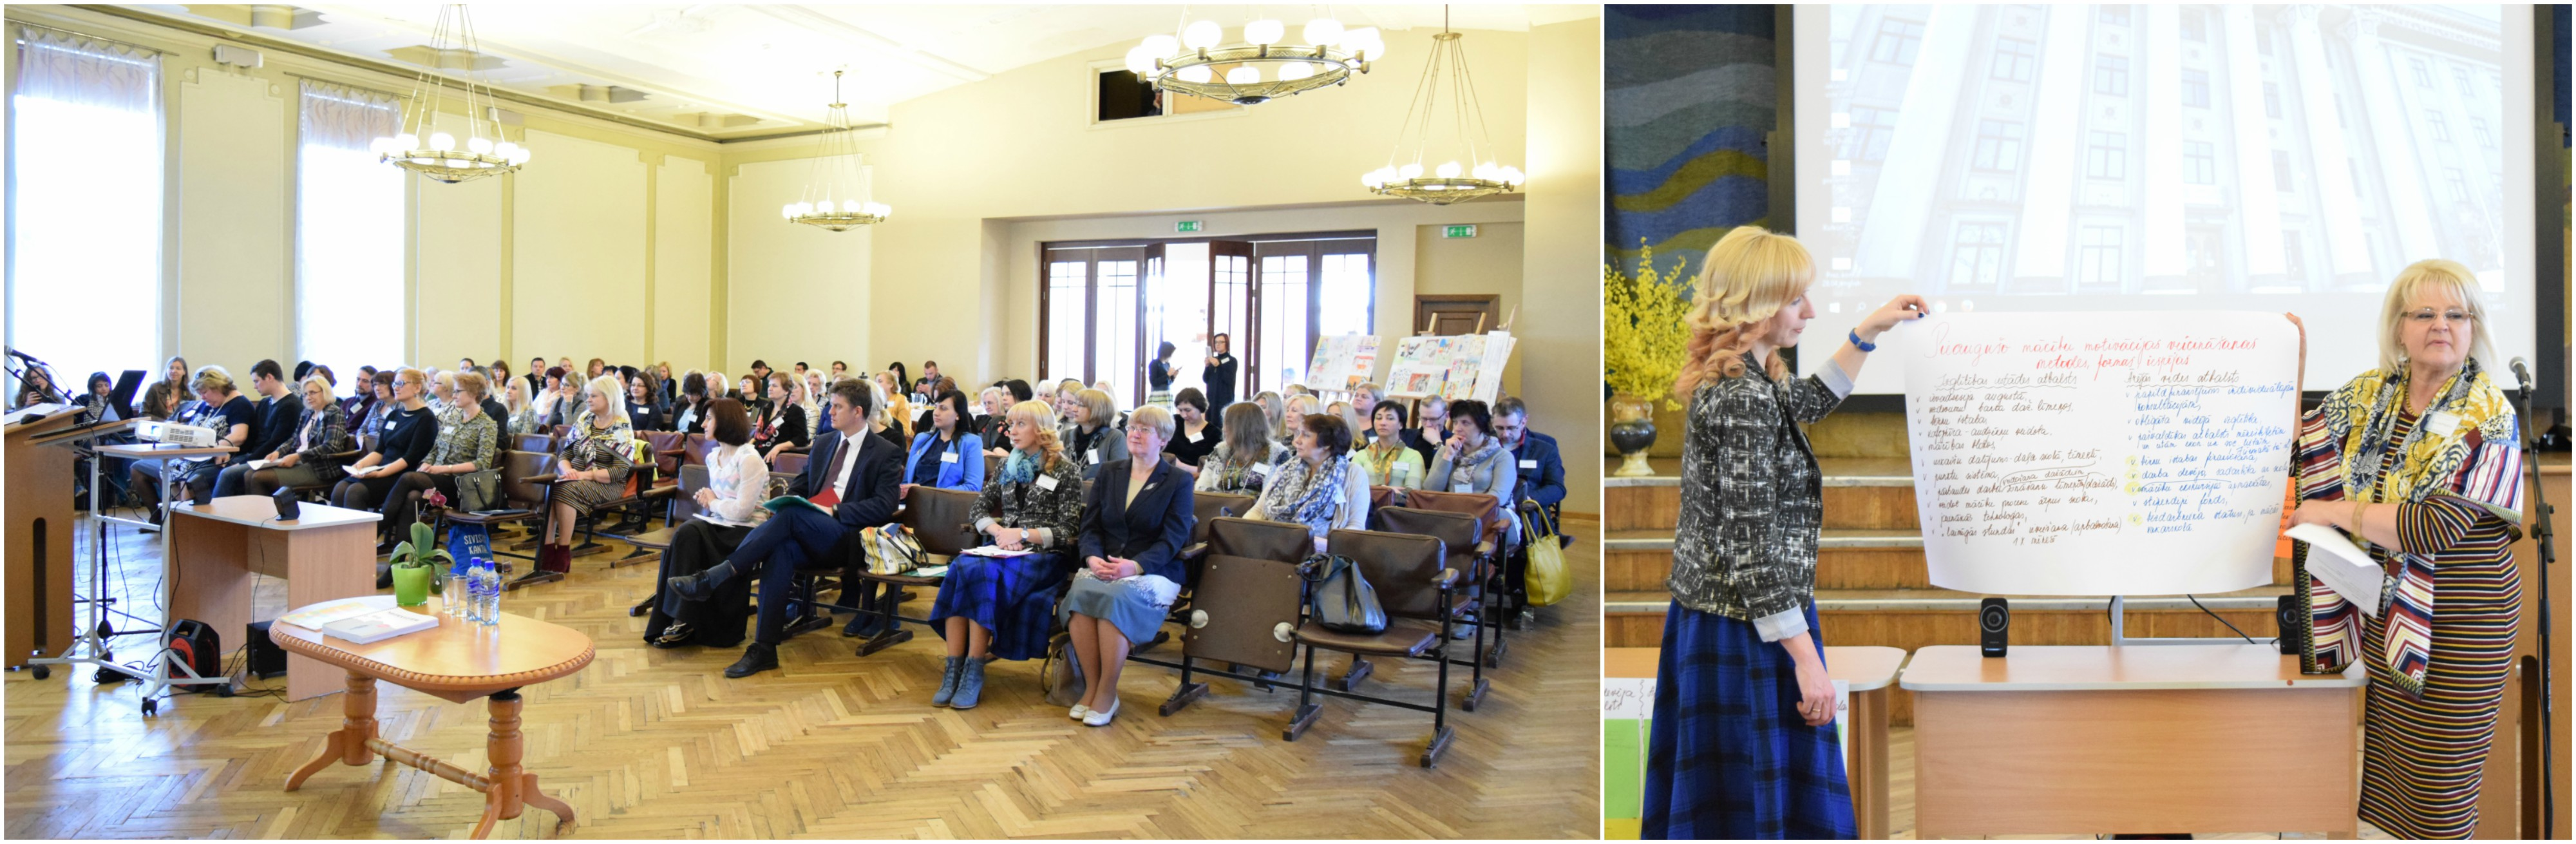 conference-in-Liepaja-1